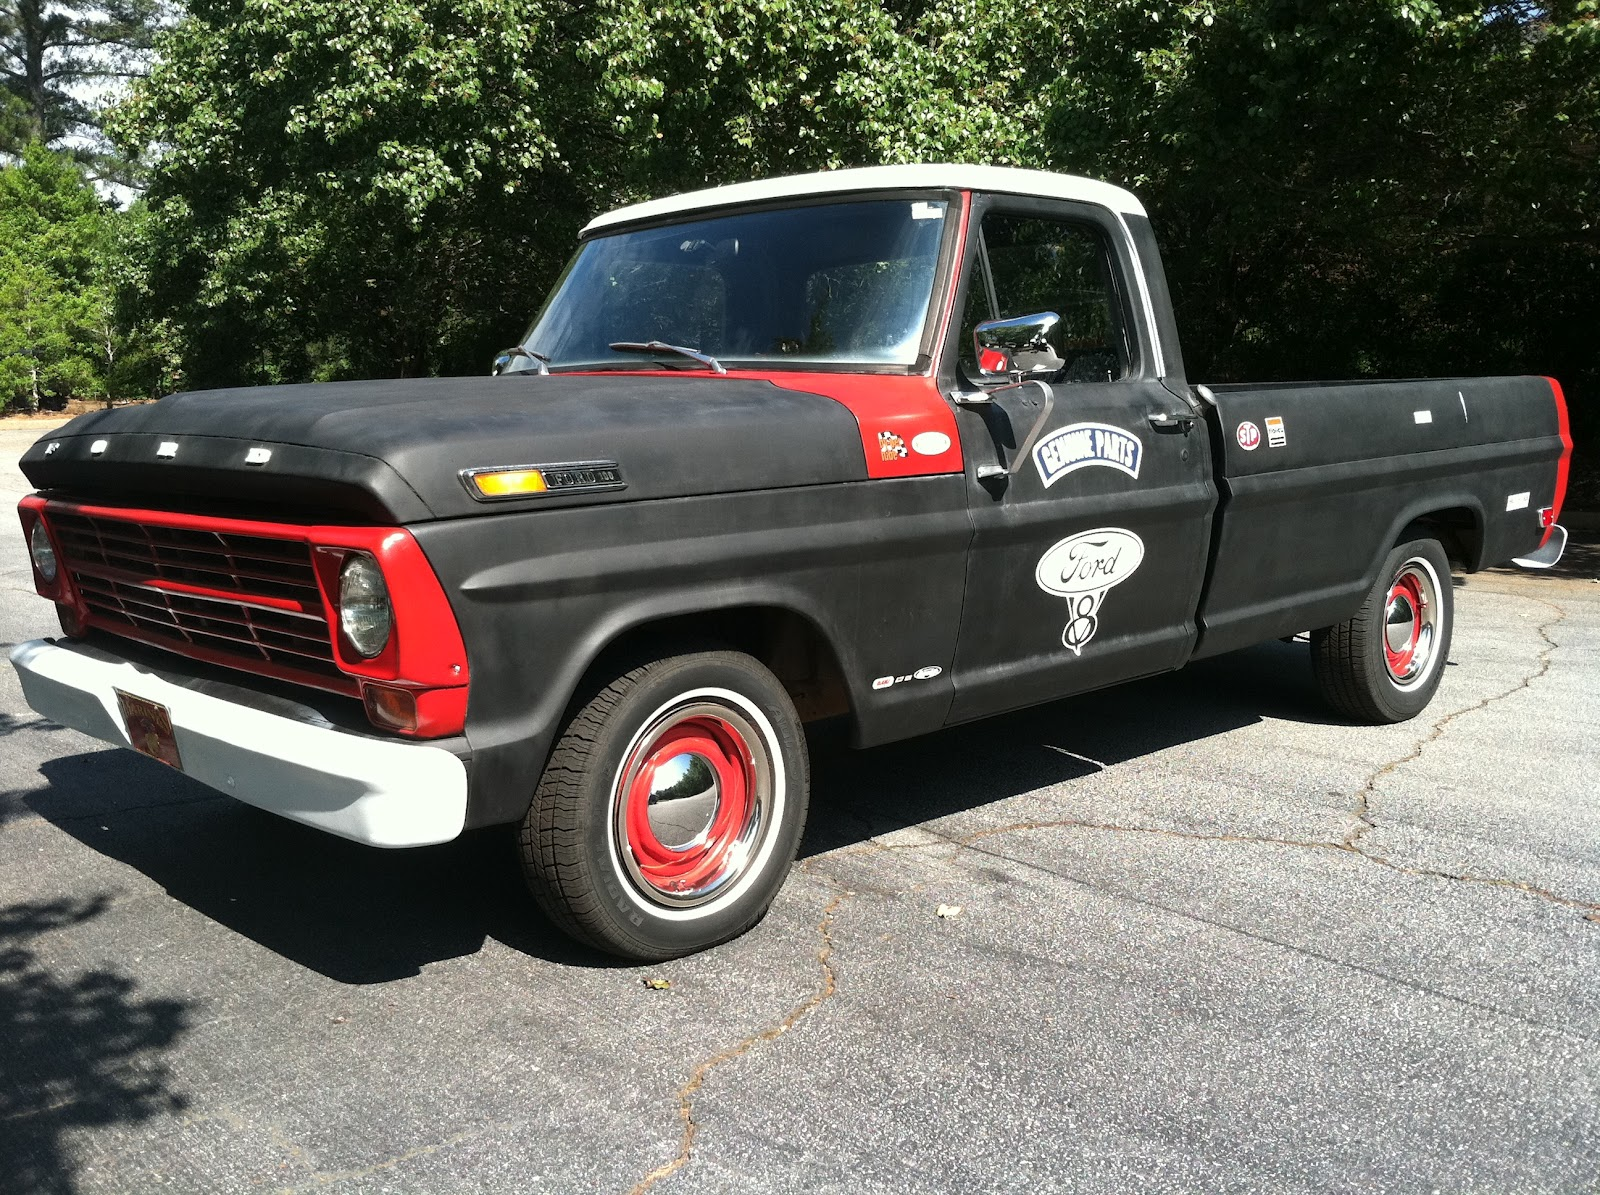 Ford f-100 1968 photo - 2